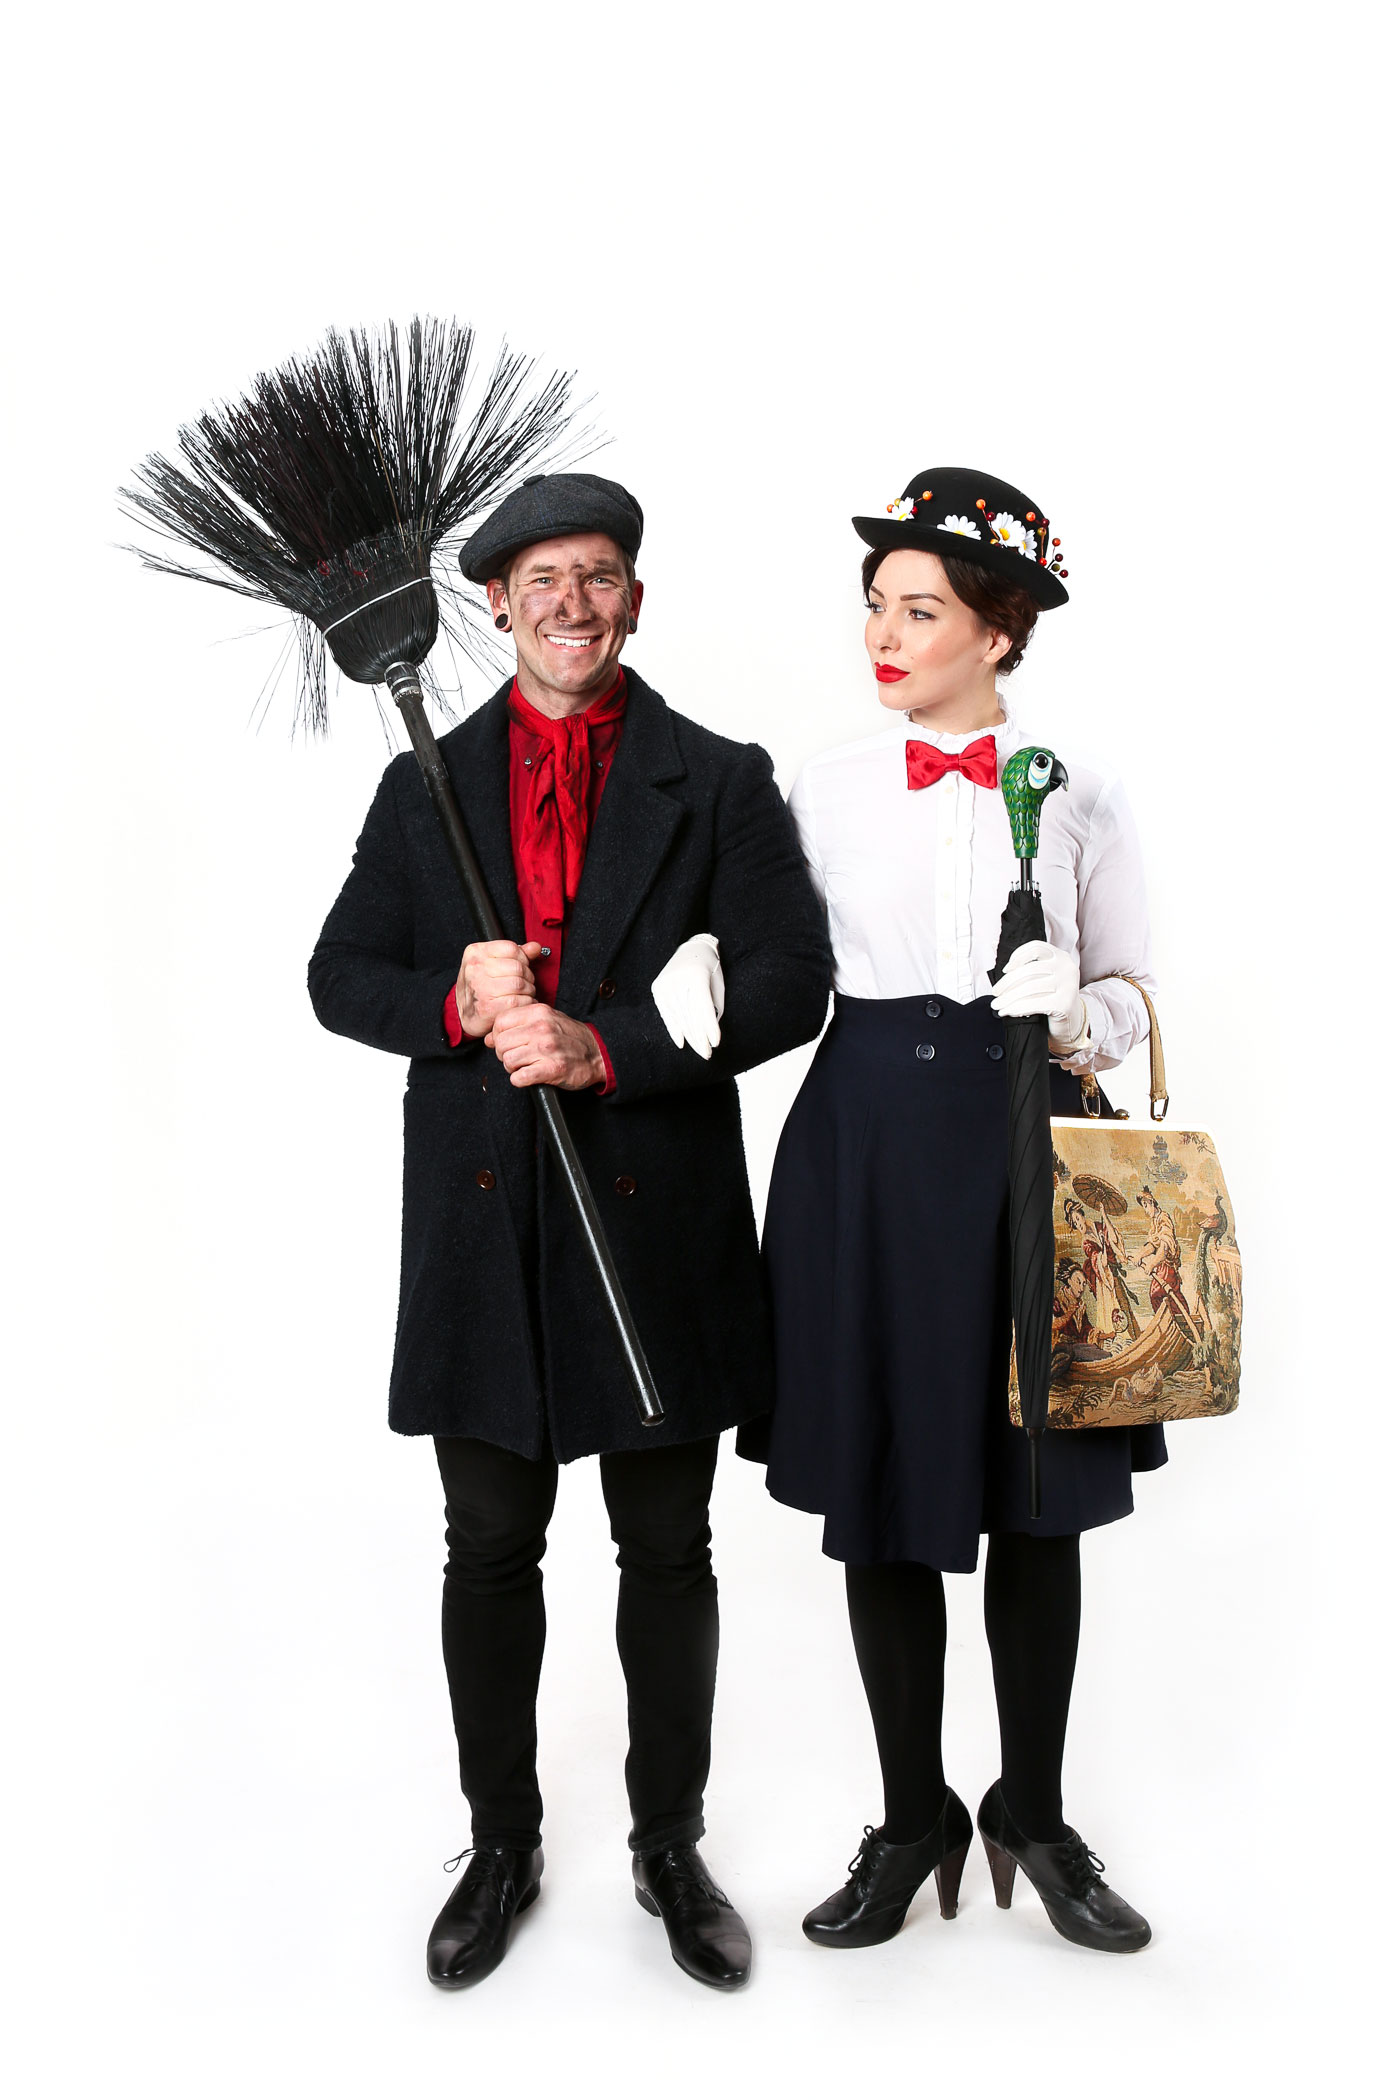 mary poppins and bert costume, keiko lynn and bobby hicks